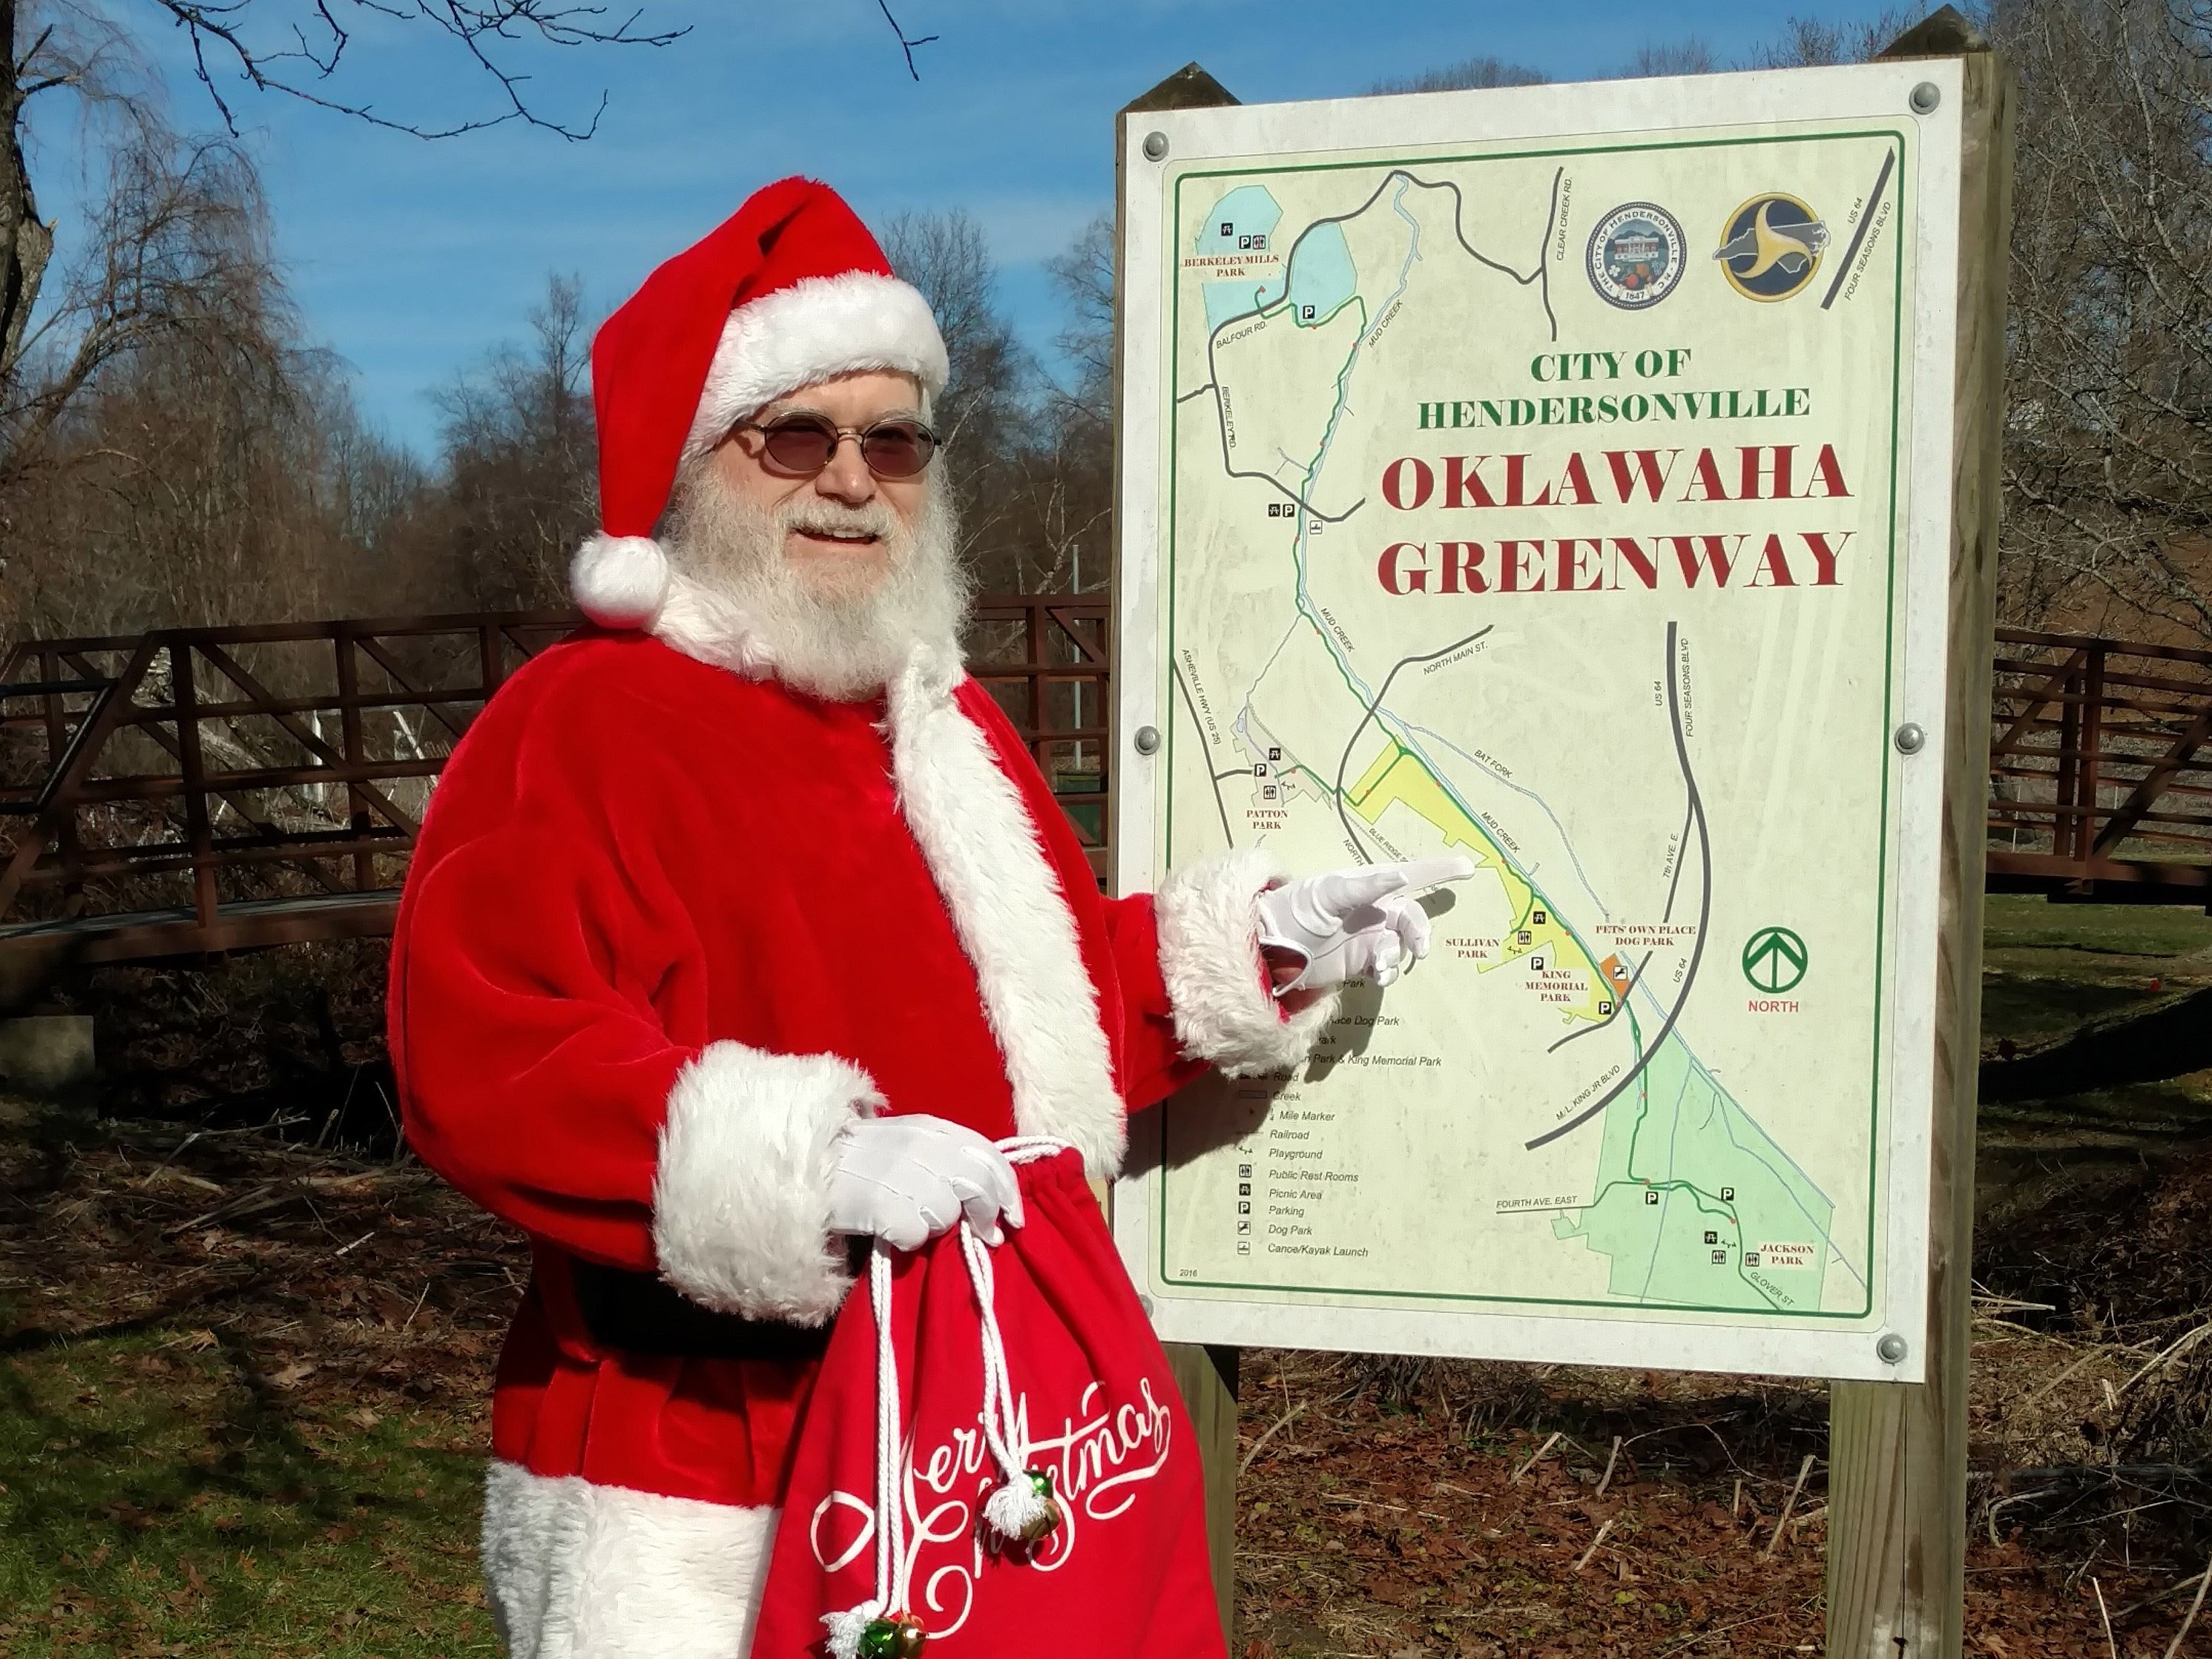 Santa on the Greenway